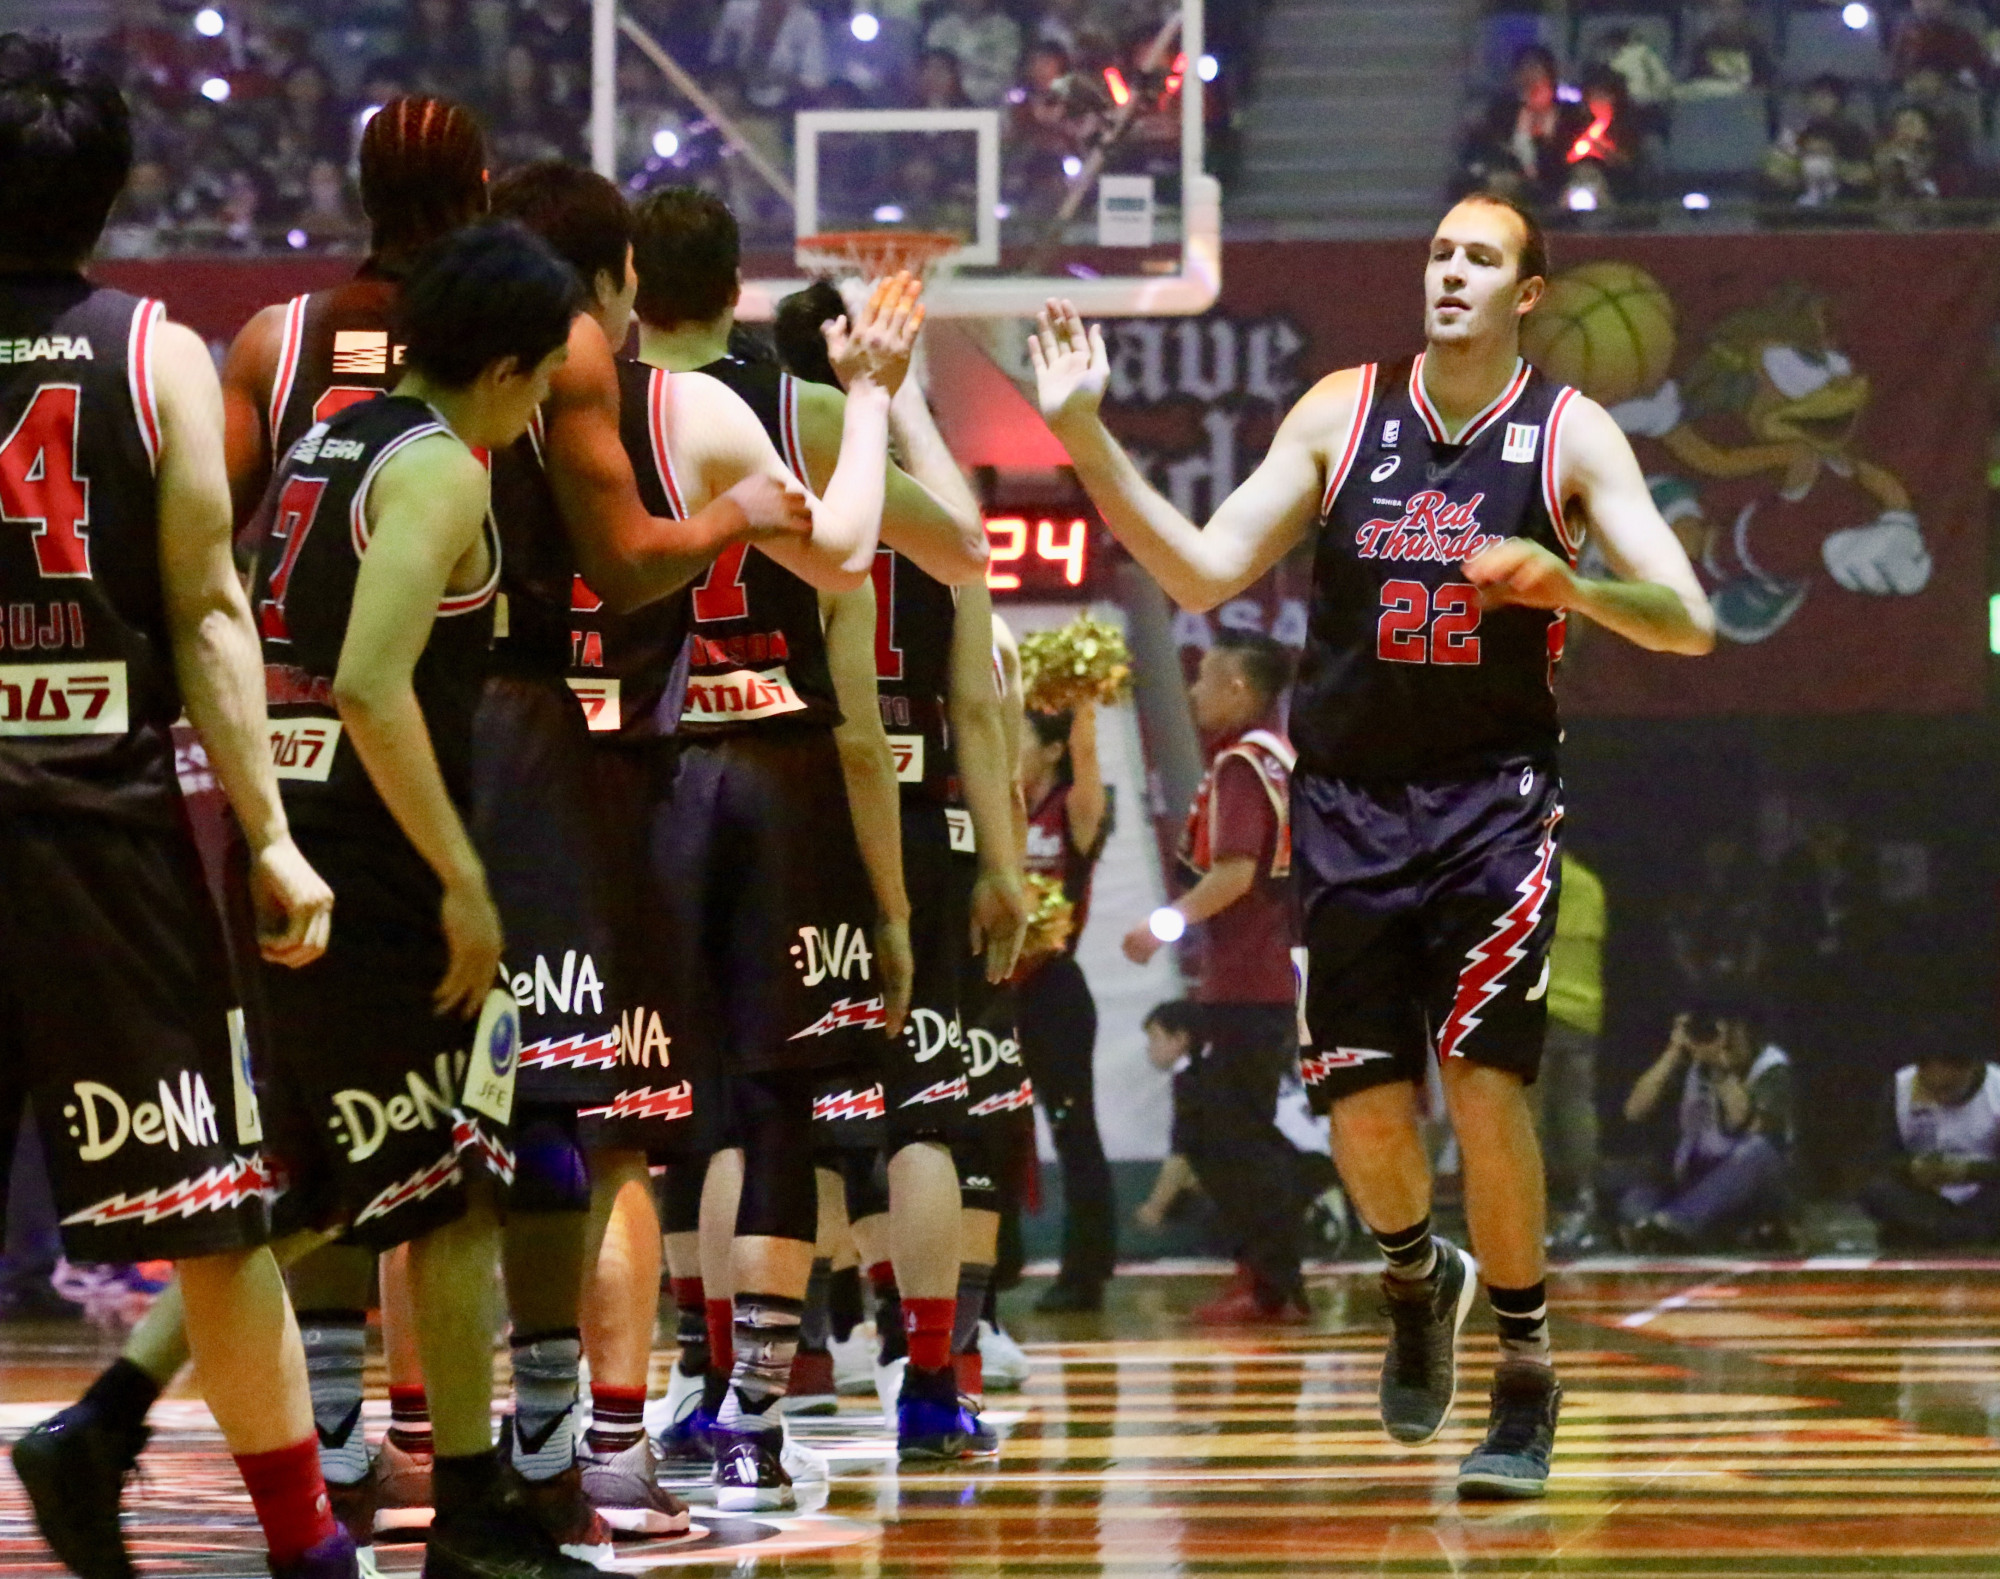 Kawasaki Brave Thunders center Nick Fazekas (22) high-fives his teammates before their final regular-season game at Todoroki Arena on Friday. The players wore throwback jerseys featuring the team's old nickname, Red Thunders, for the series against the Kyoto Hannaryz. | KAZ NAGATSUKA